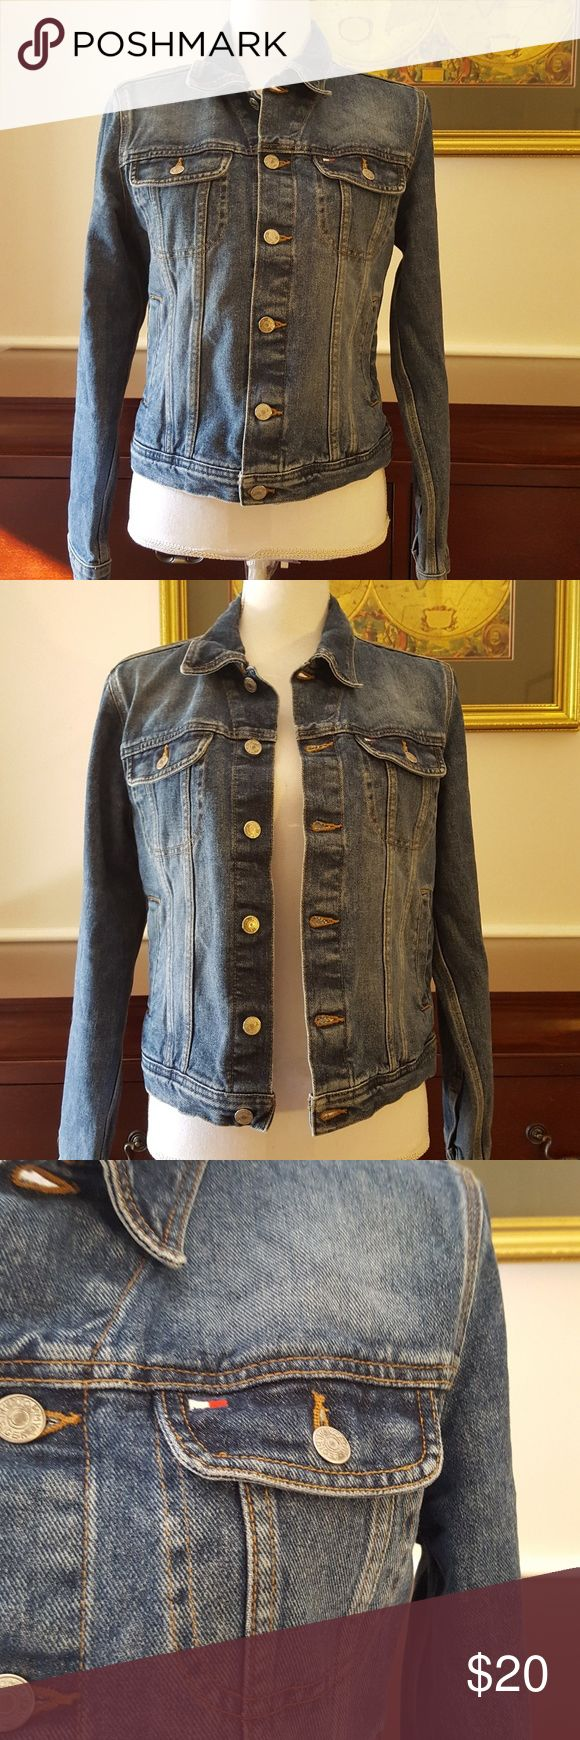 """Tommy Hilfiger Trucker Logo Jean Jacket Medium Nice Vintage look denim jacket with Hilfiger logos. Button Front. Button pockets at chest with slant pockets at waist. Hilfiger flag logo on chest. Leather patch at side hip. 100% Cotton. Very good used condition. Approximate Measurements: Chest 19.5"""" Across  Shoulder to Shoulder 16.5"""" Across  Length 21"""" Tommy Hilfiger Jackets & Coats Jean Jackets"""